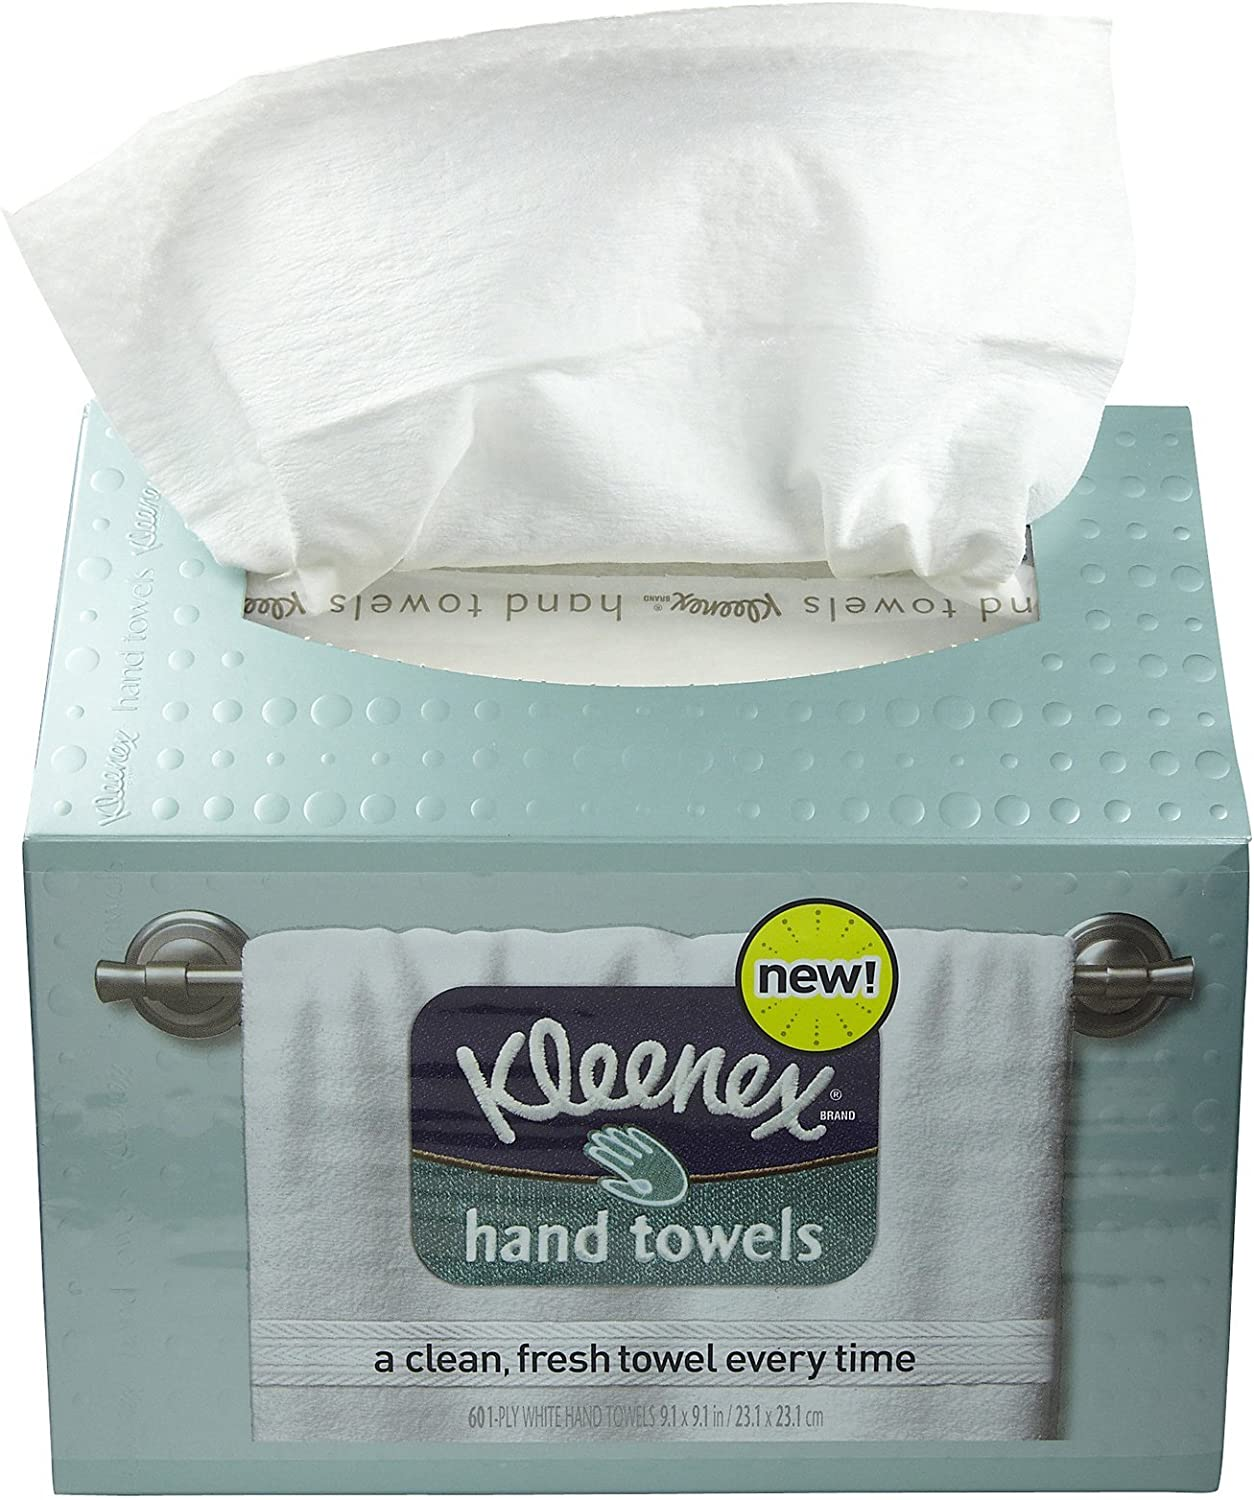 Selling and selling Kleenex Sale special price Hand Towels ct 60